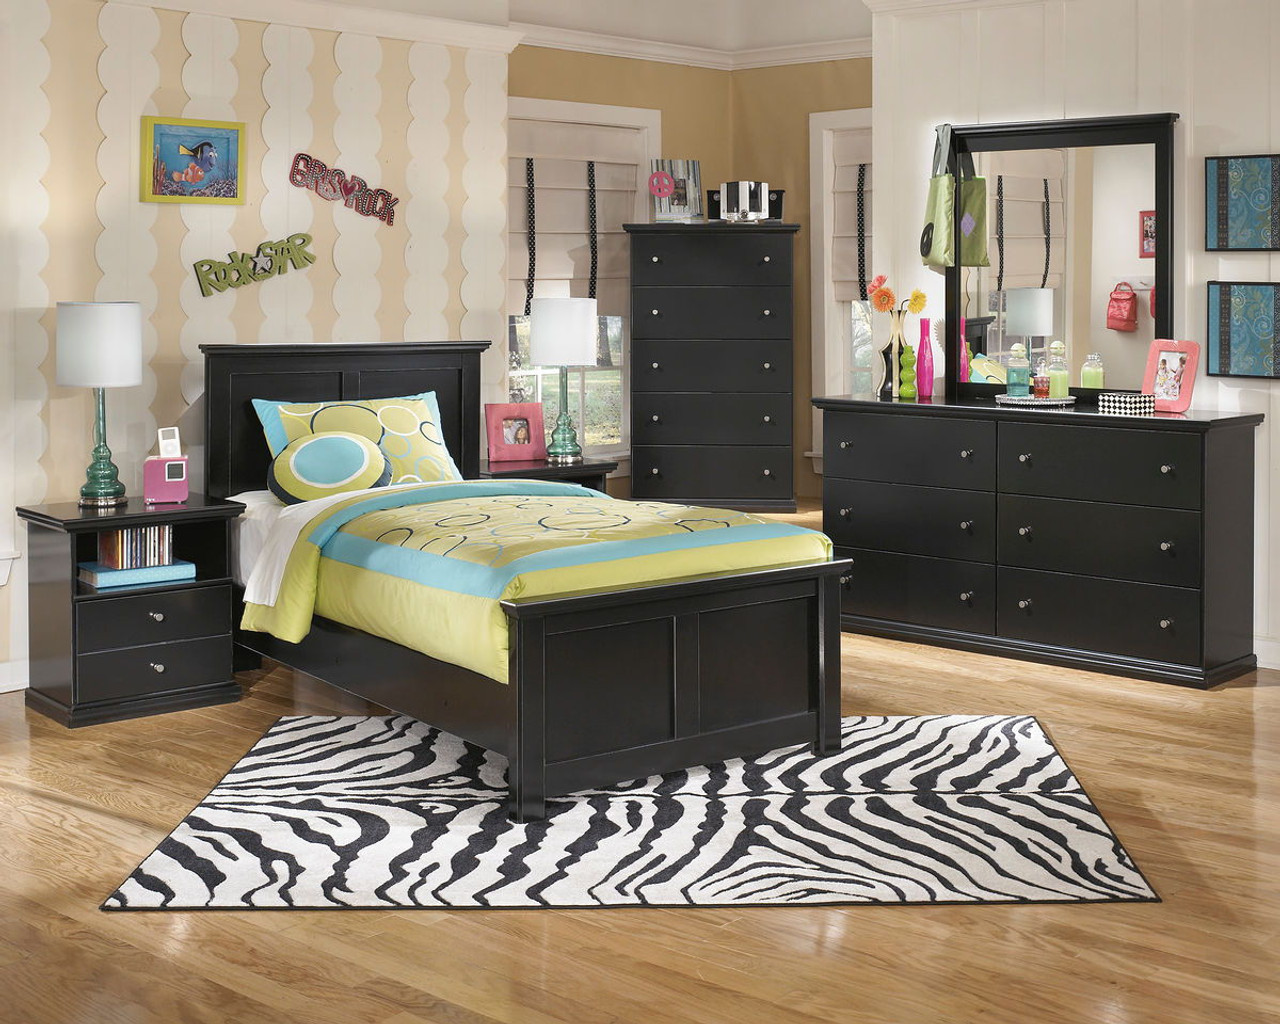 The Maribel Black 6 Pc Dresser Mirror Chest Twin Panel Bed Available At Furniture Connection Serving Clarksville Tennessee And Ft Campbell Kentucky